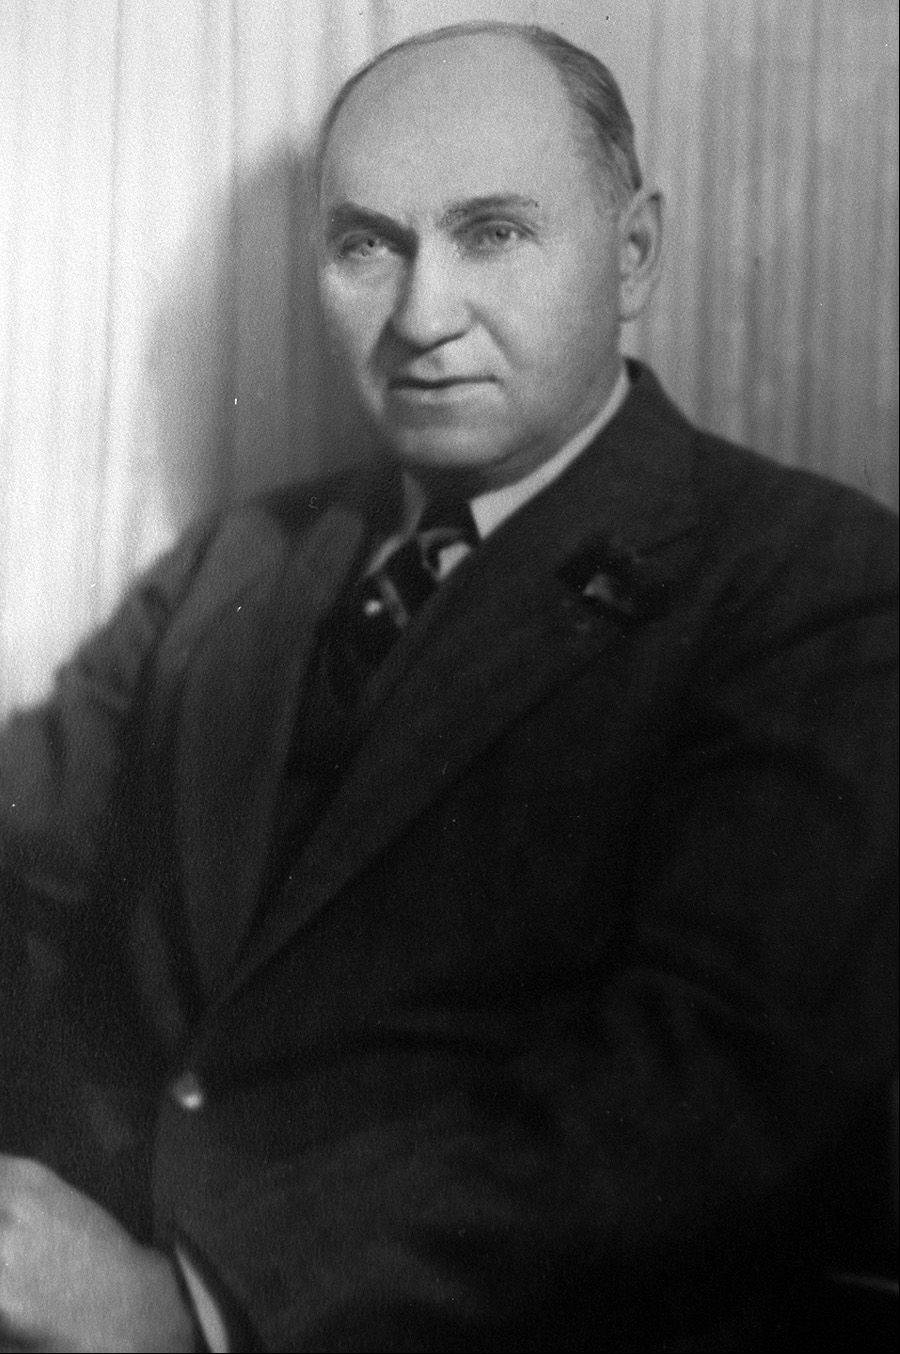 Julius Flentie, mayor 1927-1941